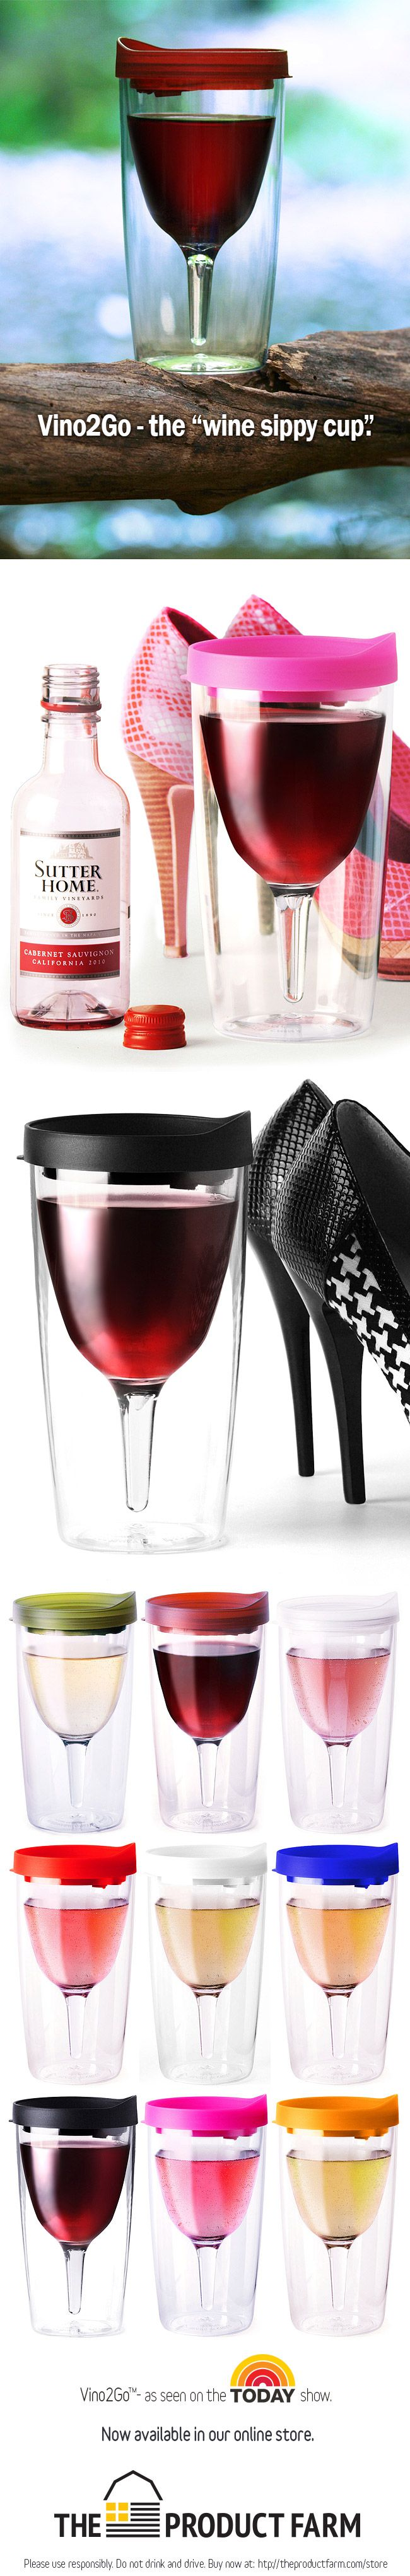 "Vino2Go™ - the ""Wine Sippy Cup"""